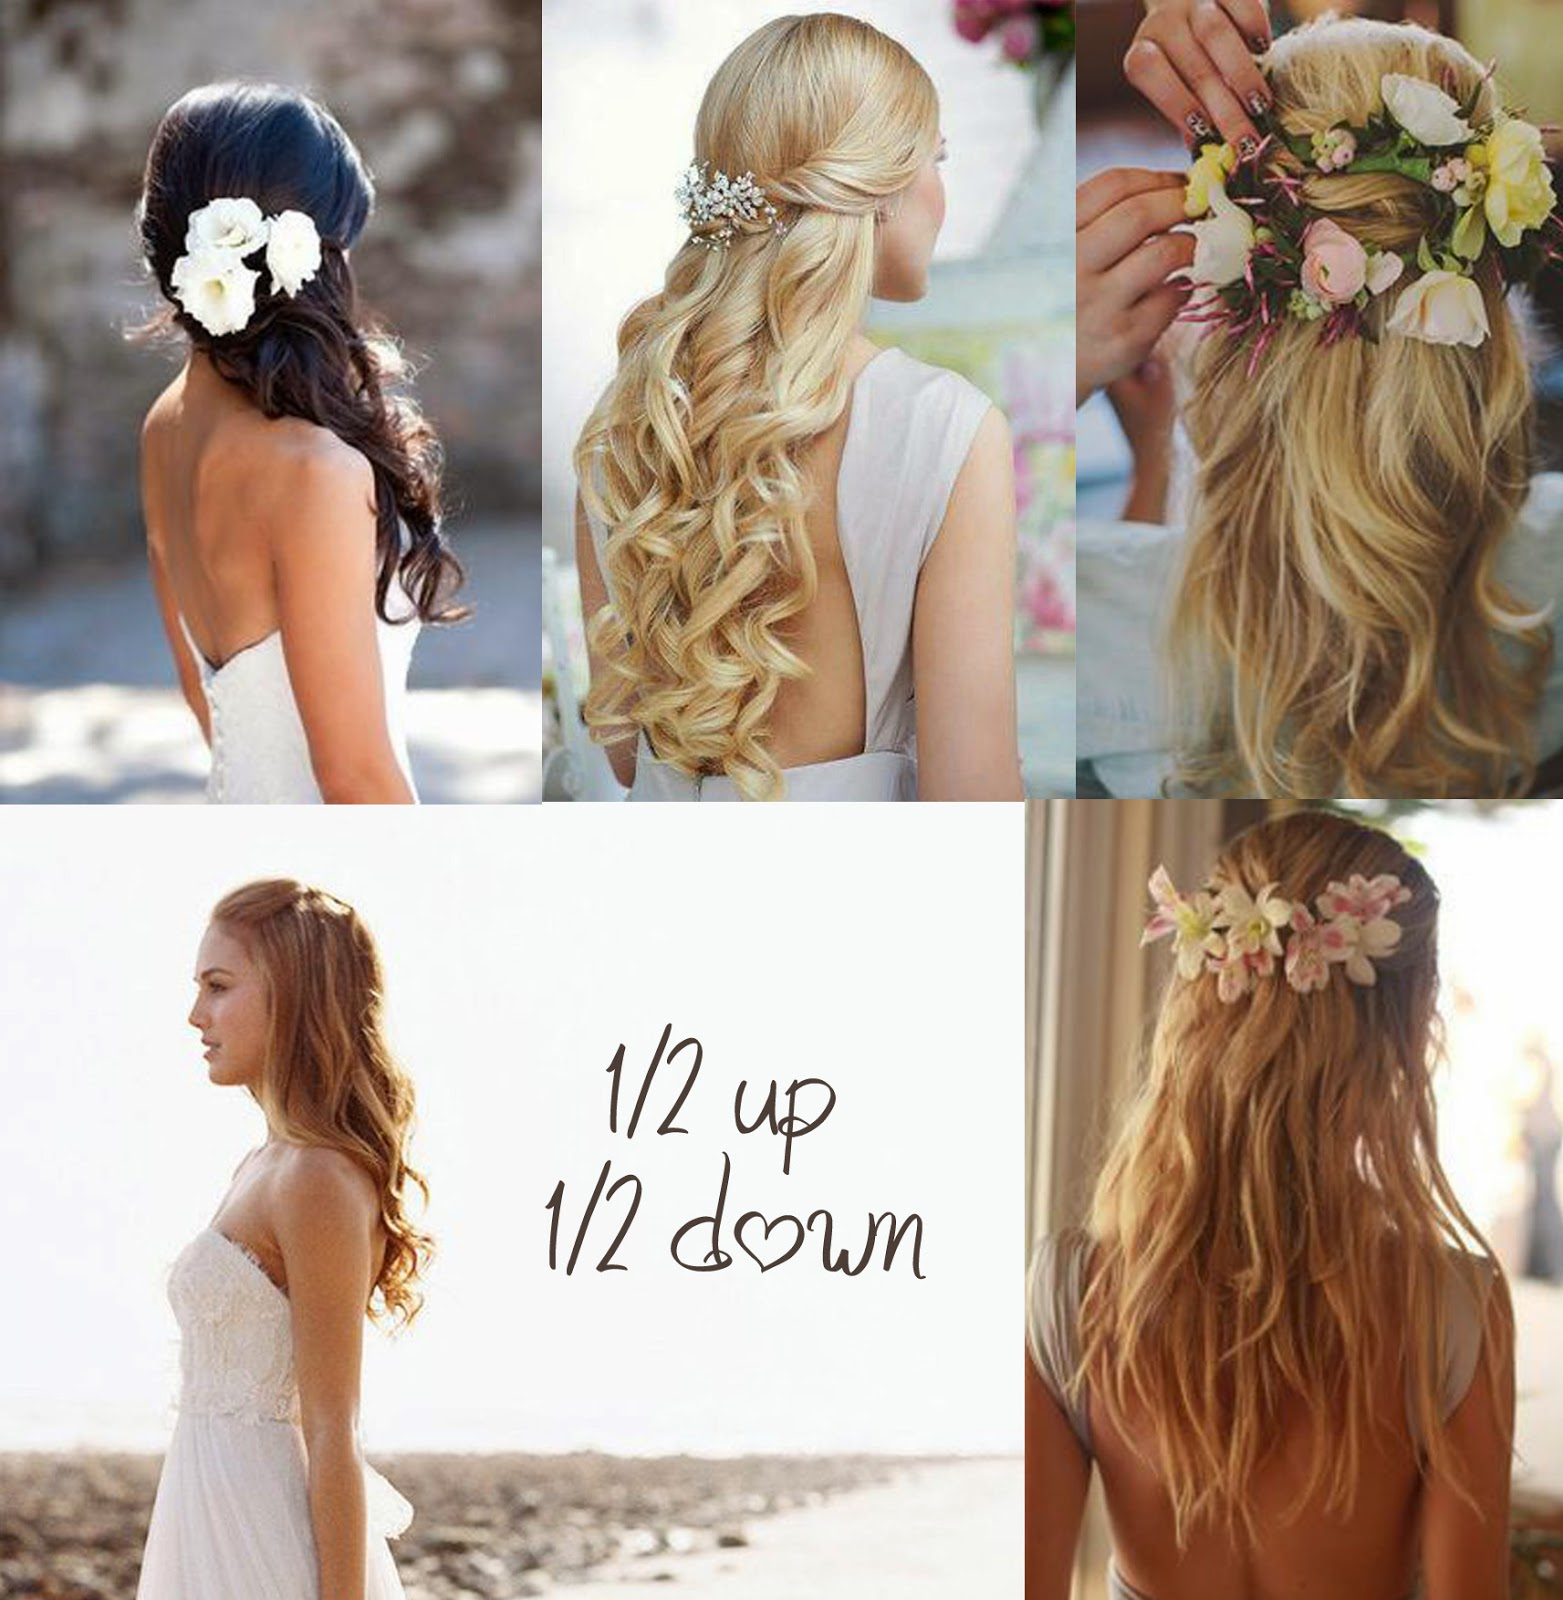 Wedding Hairstyle Beach: Natasha Wedding Essentials: Summer Beach Wedding Ideas